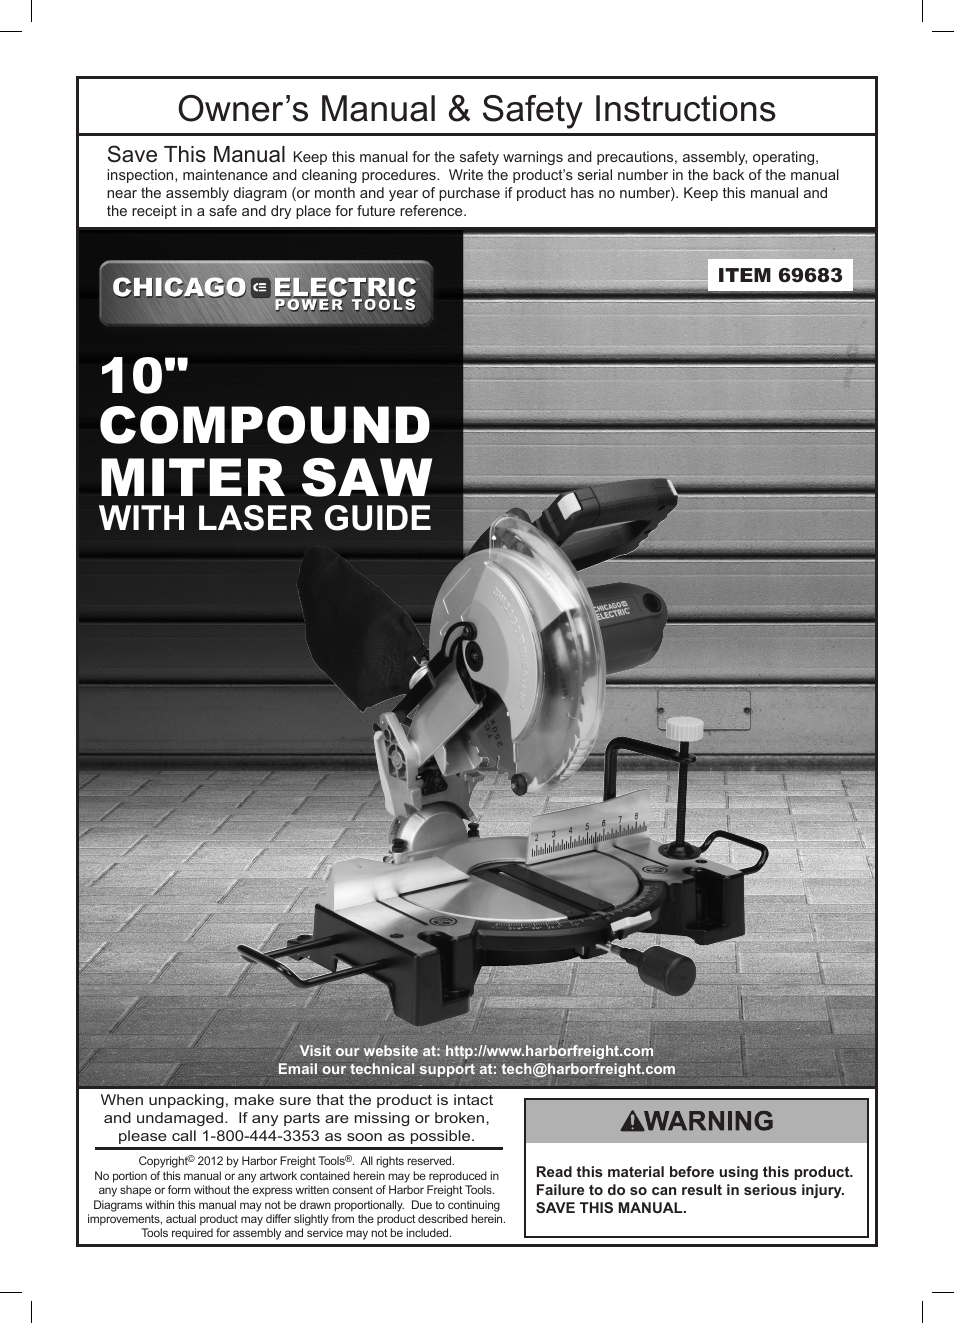 Chicago       Electric    10  Compound Miter Saw with Laser Guide 69683 User Manual   20 pages